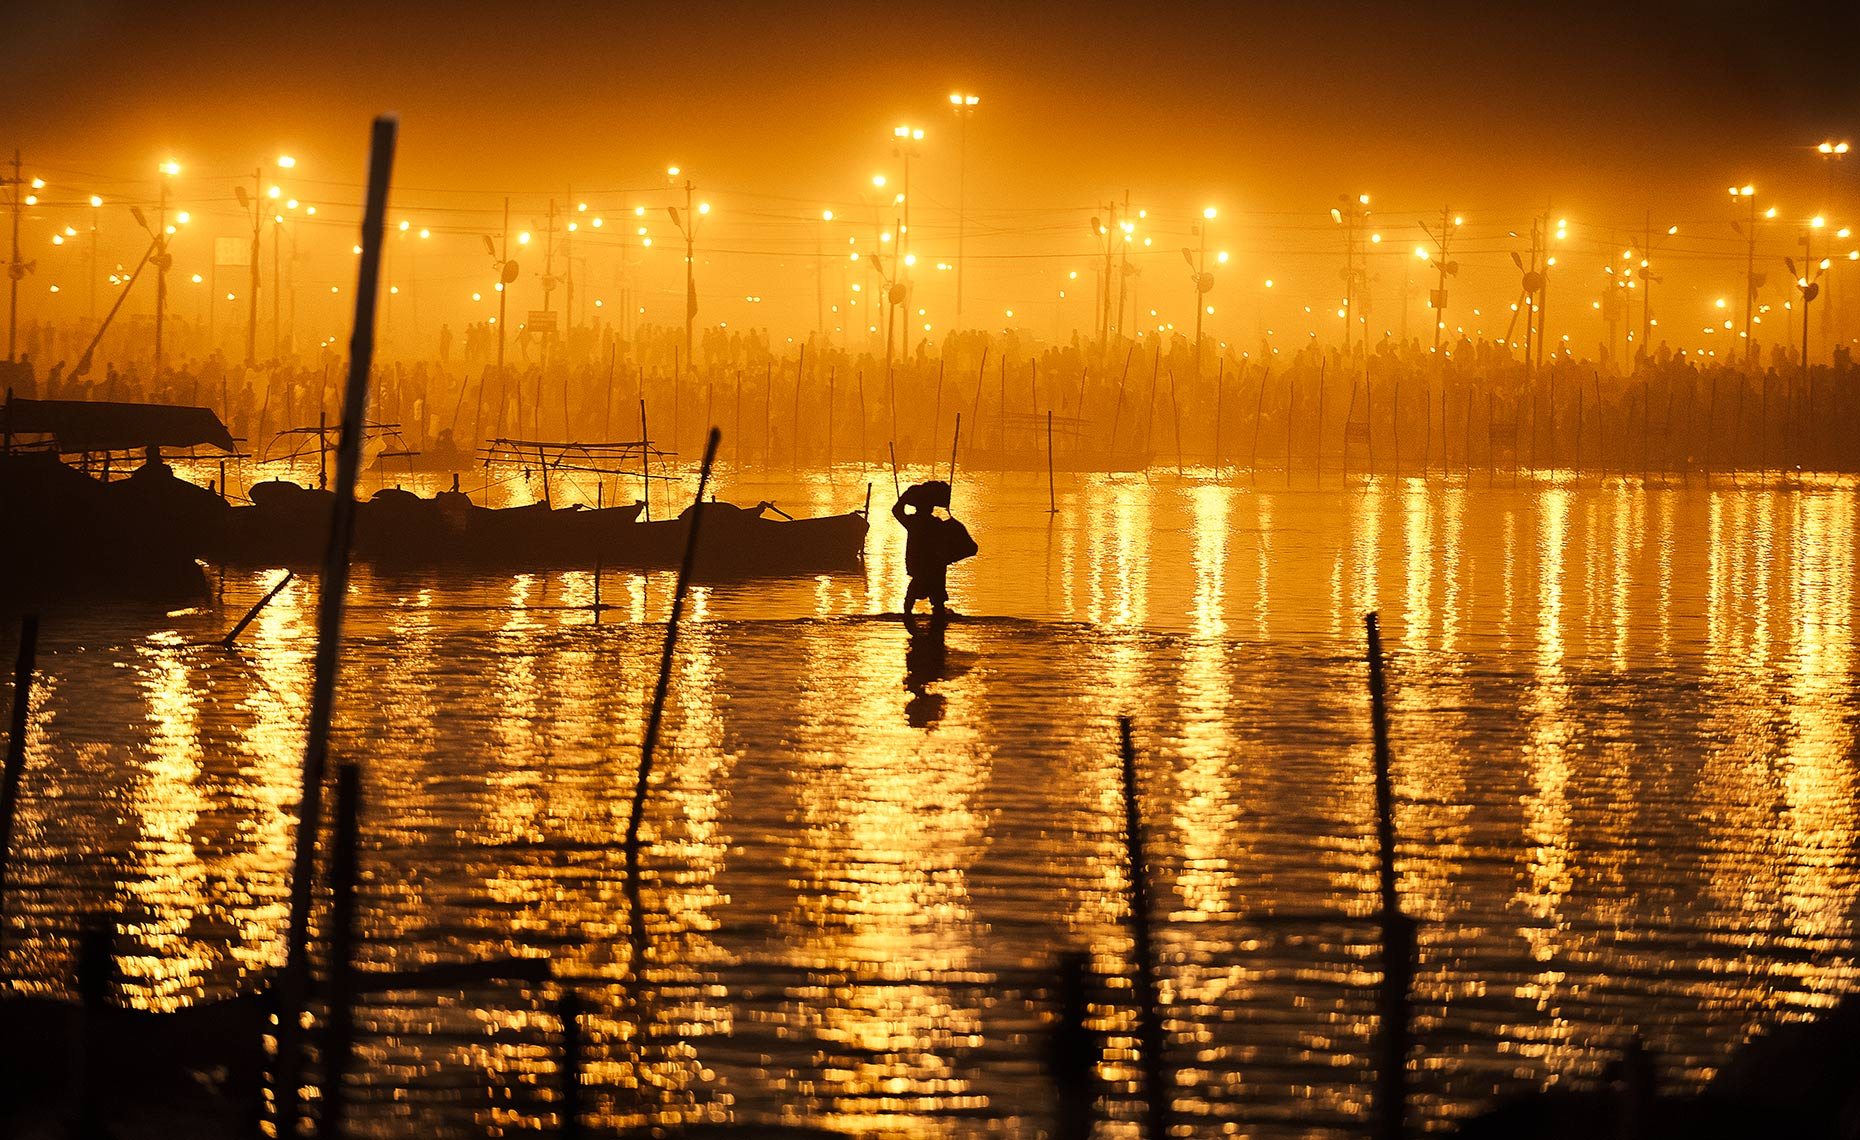 hindu_pilgrim_walking_on_the_water_in_kumbh_mela_india